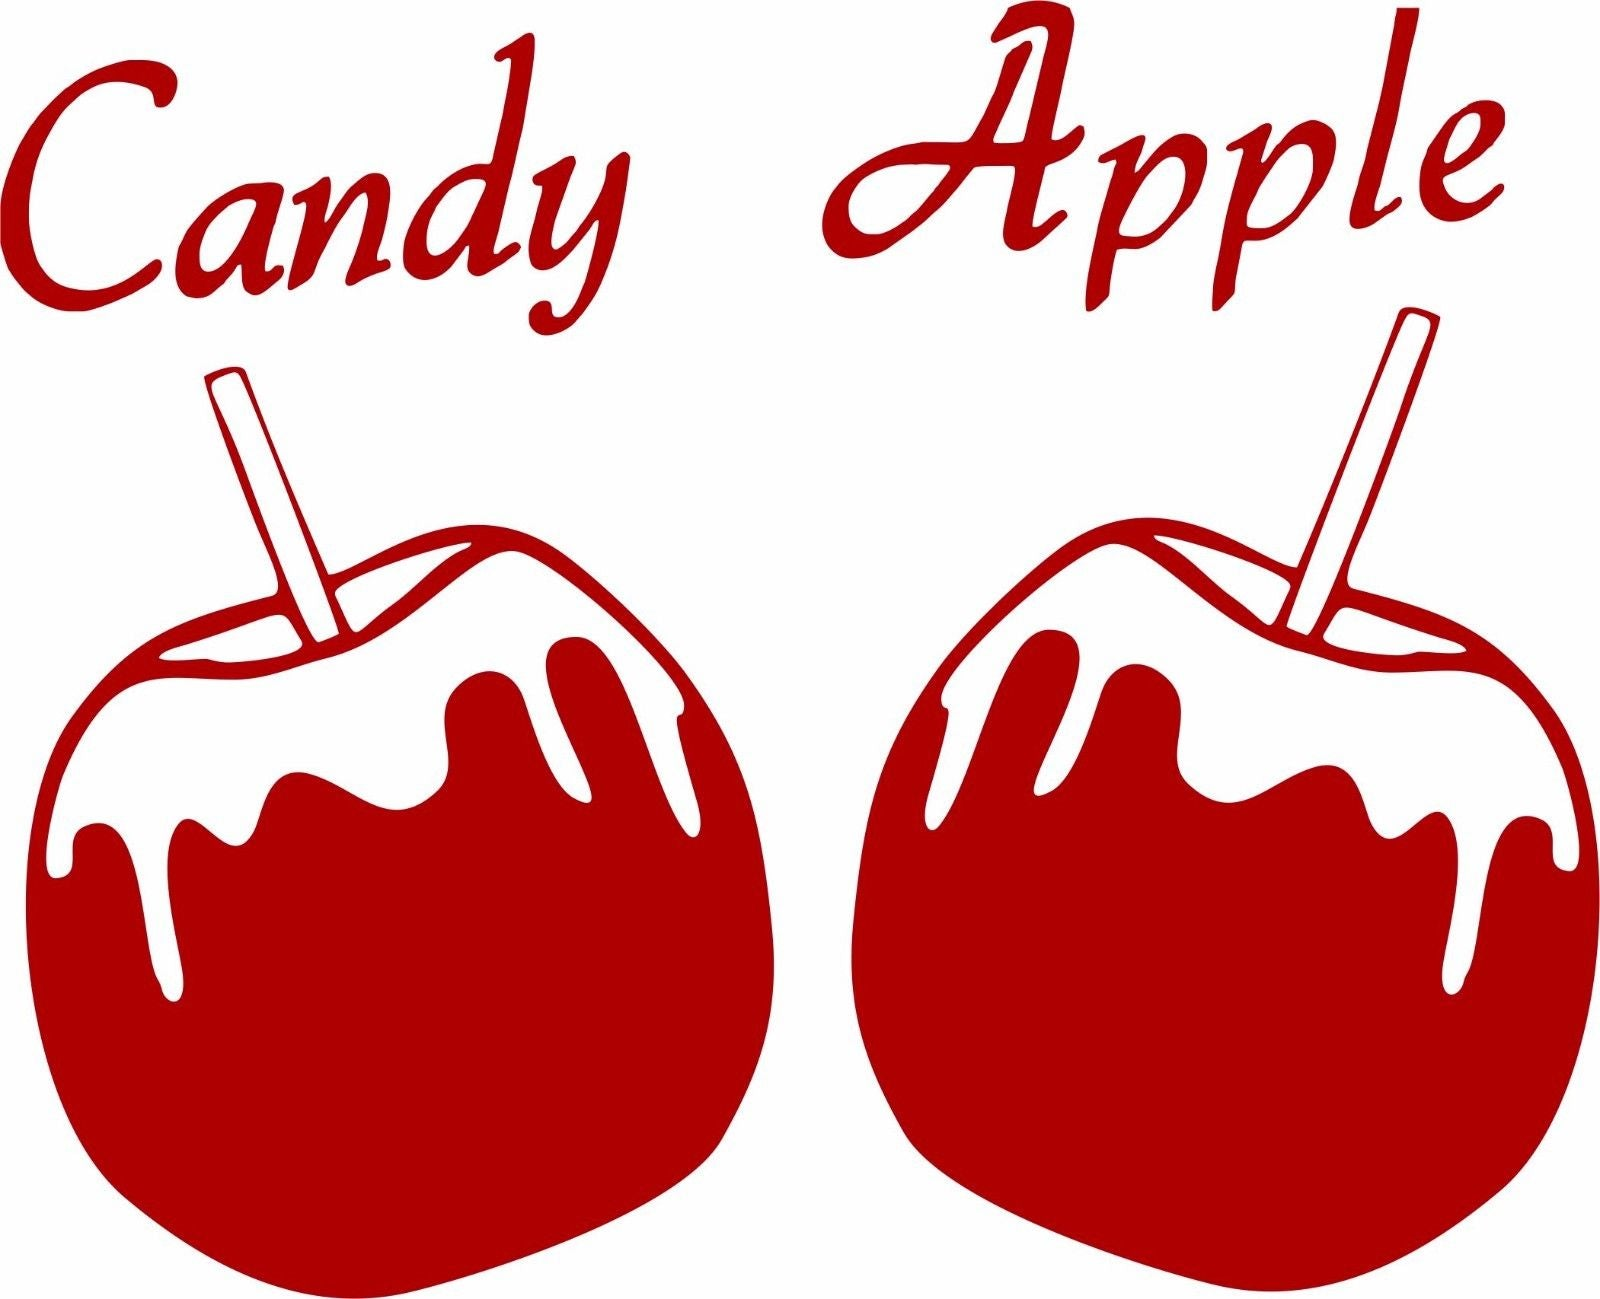 "Candy Apple Fruit Girl Sweet Fair Carnival Truck Car Window Vinyl Decal Sticker - 11"" Long Edge"